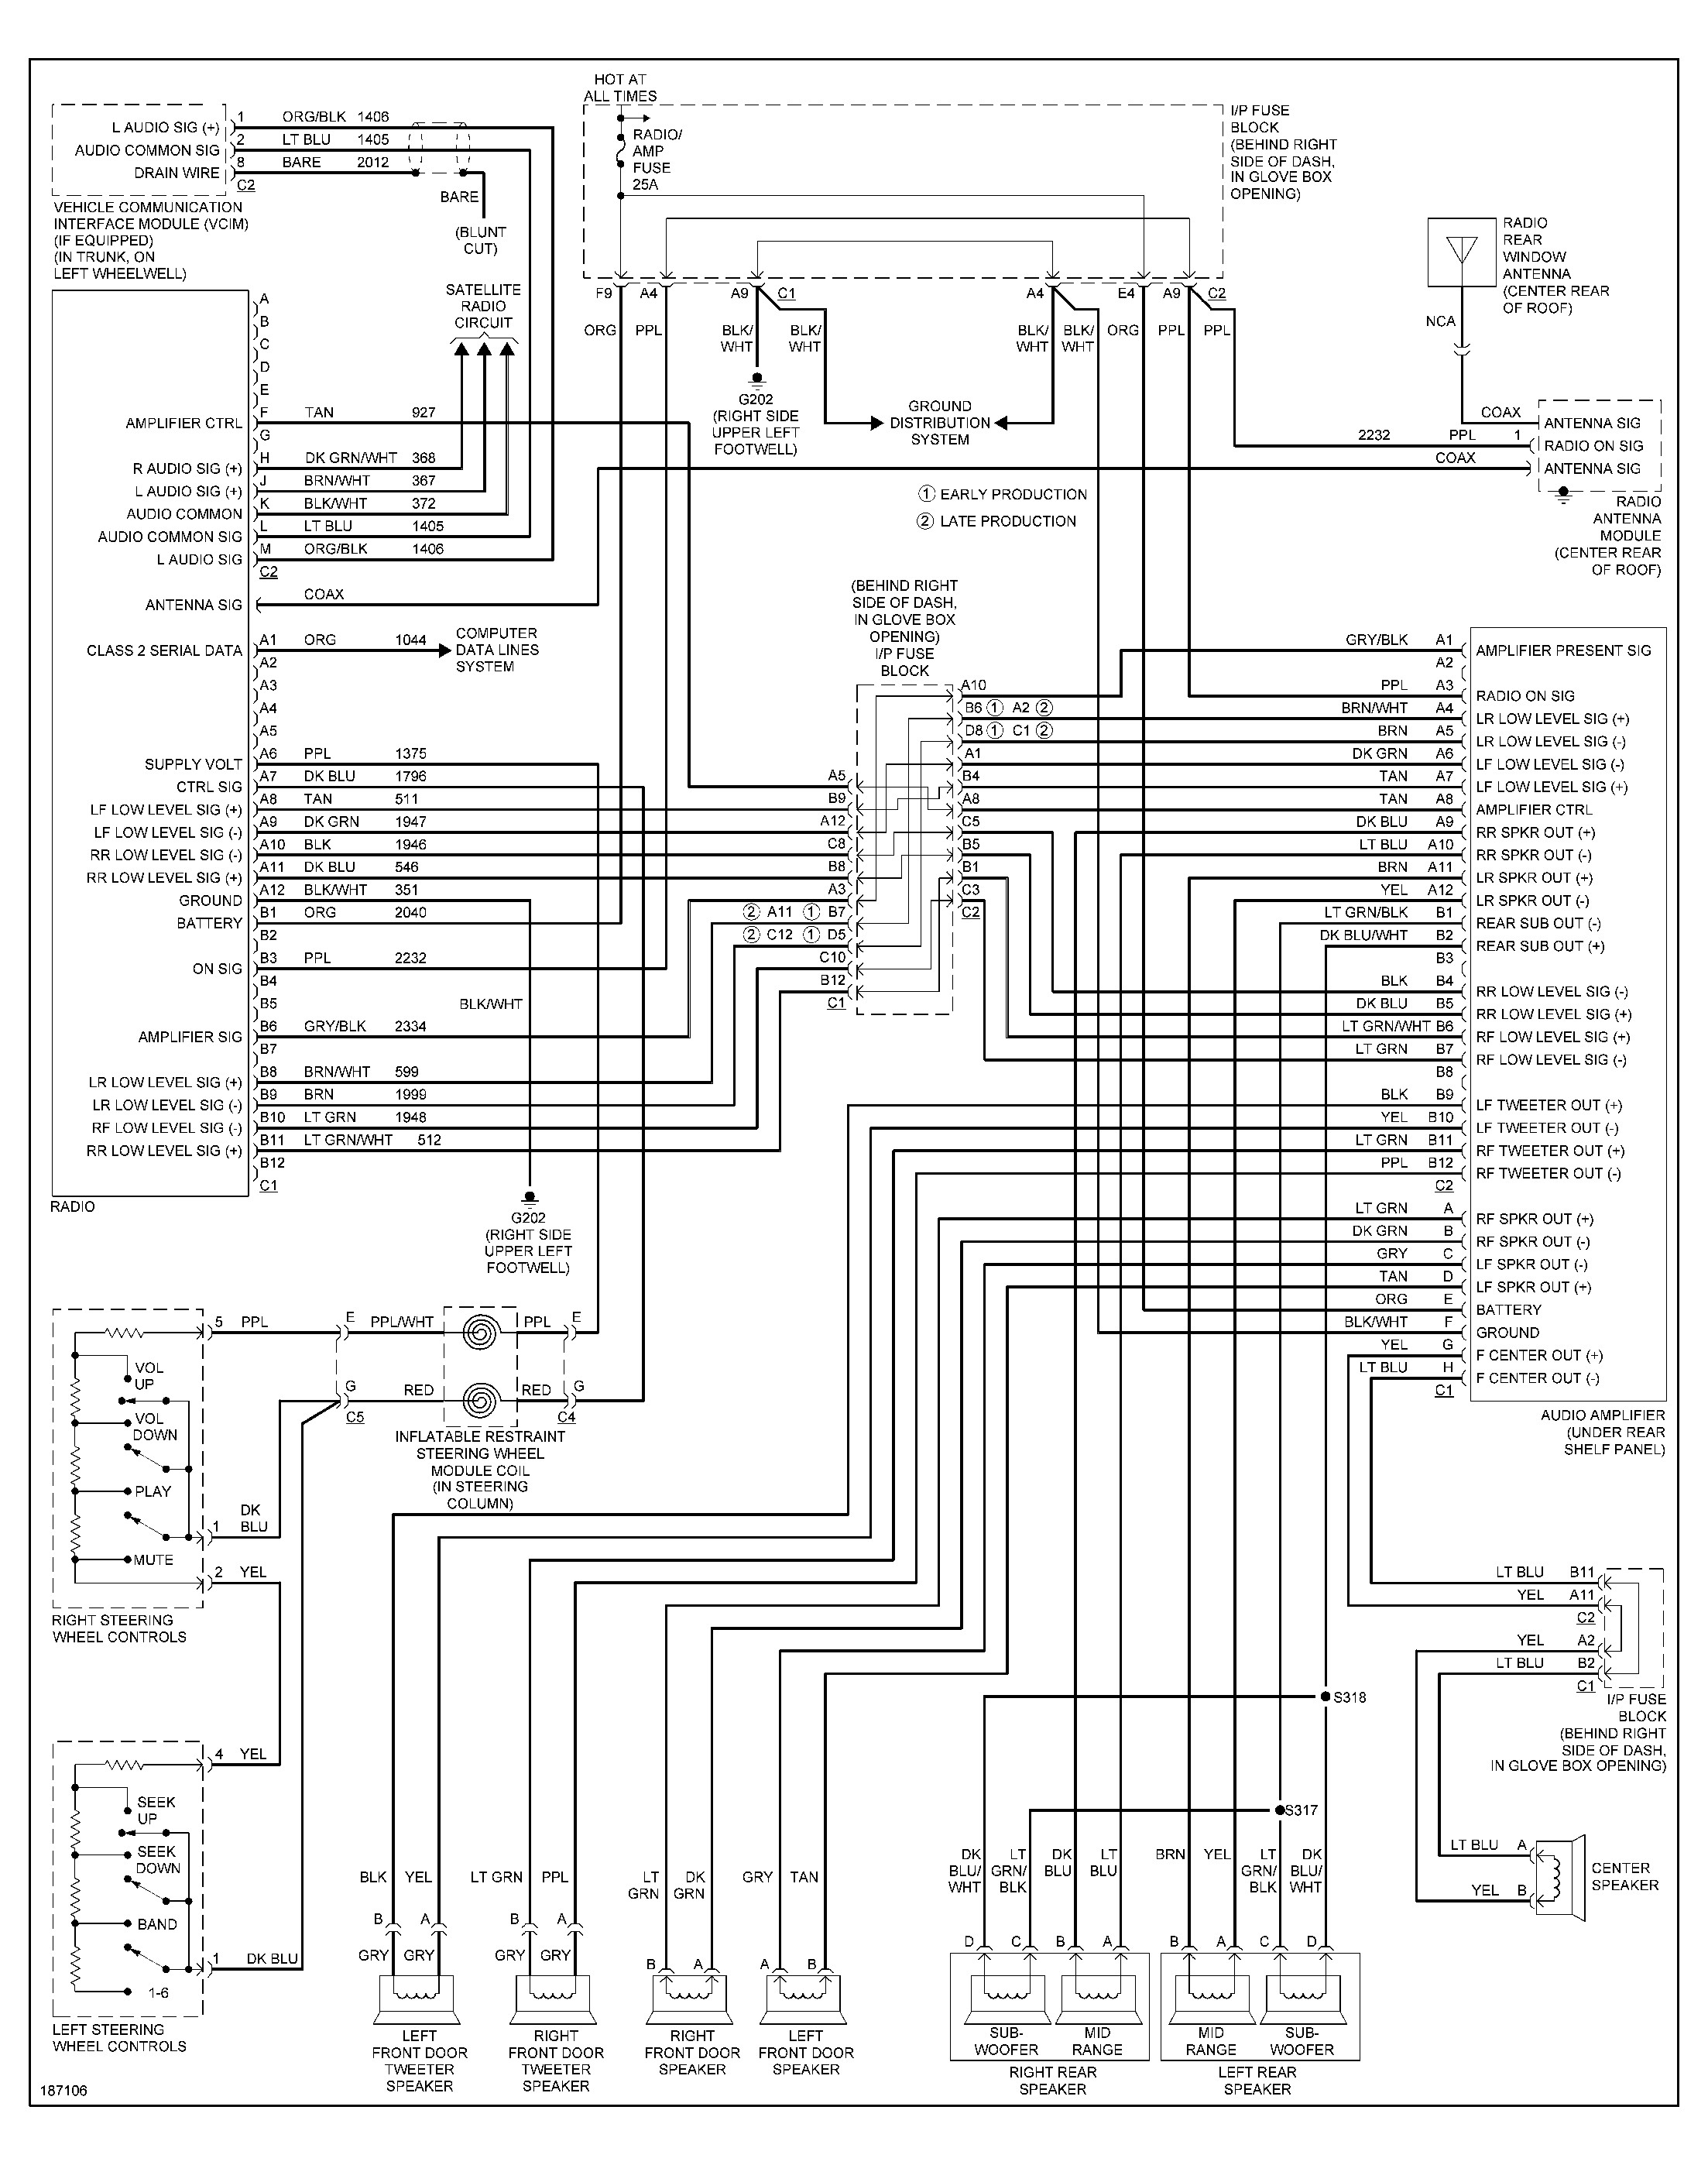 Wiring Diagram For 2002 Pontiac Grand Prix Radio